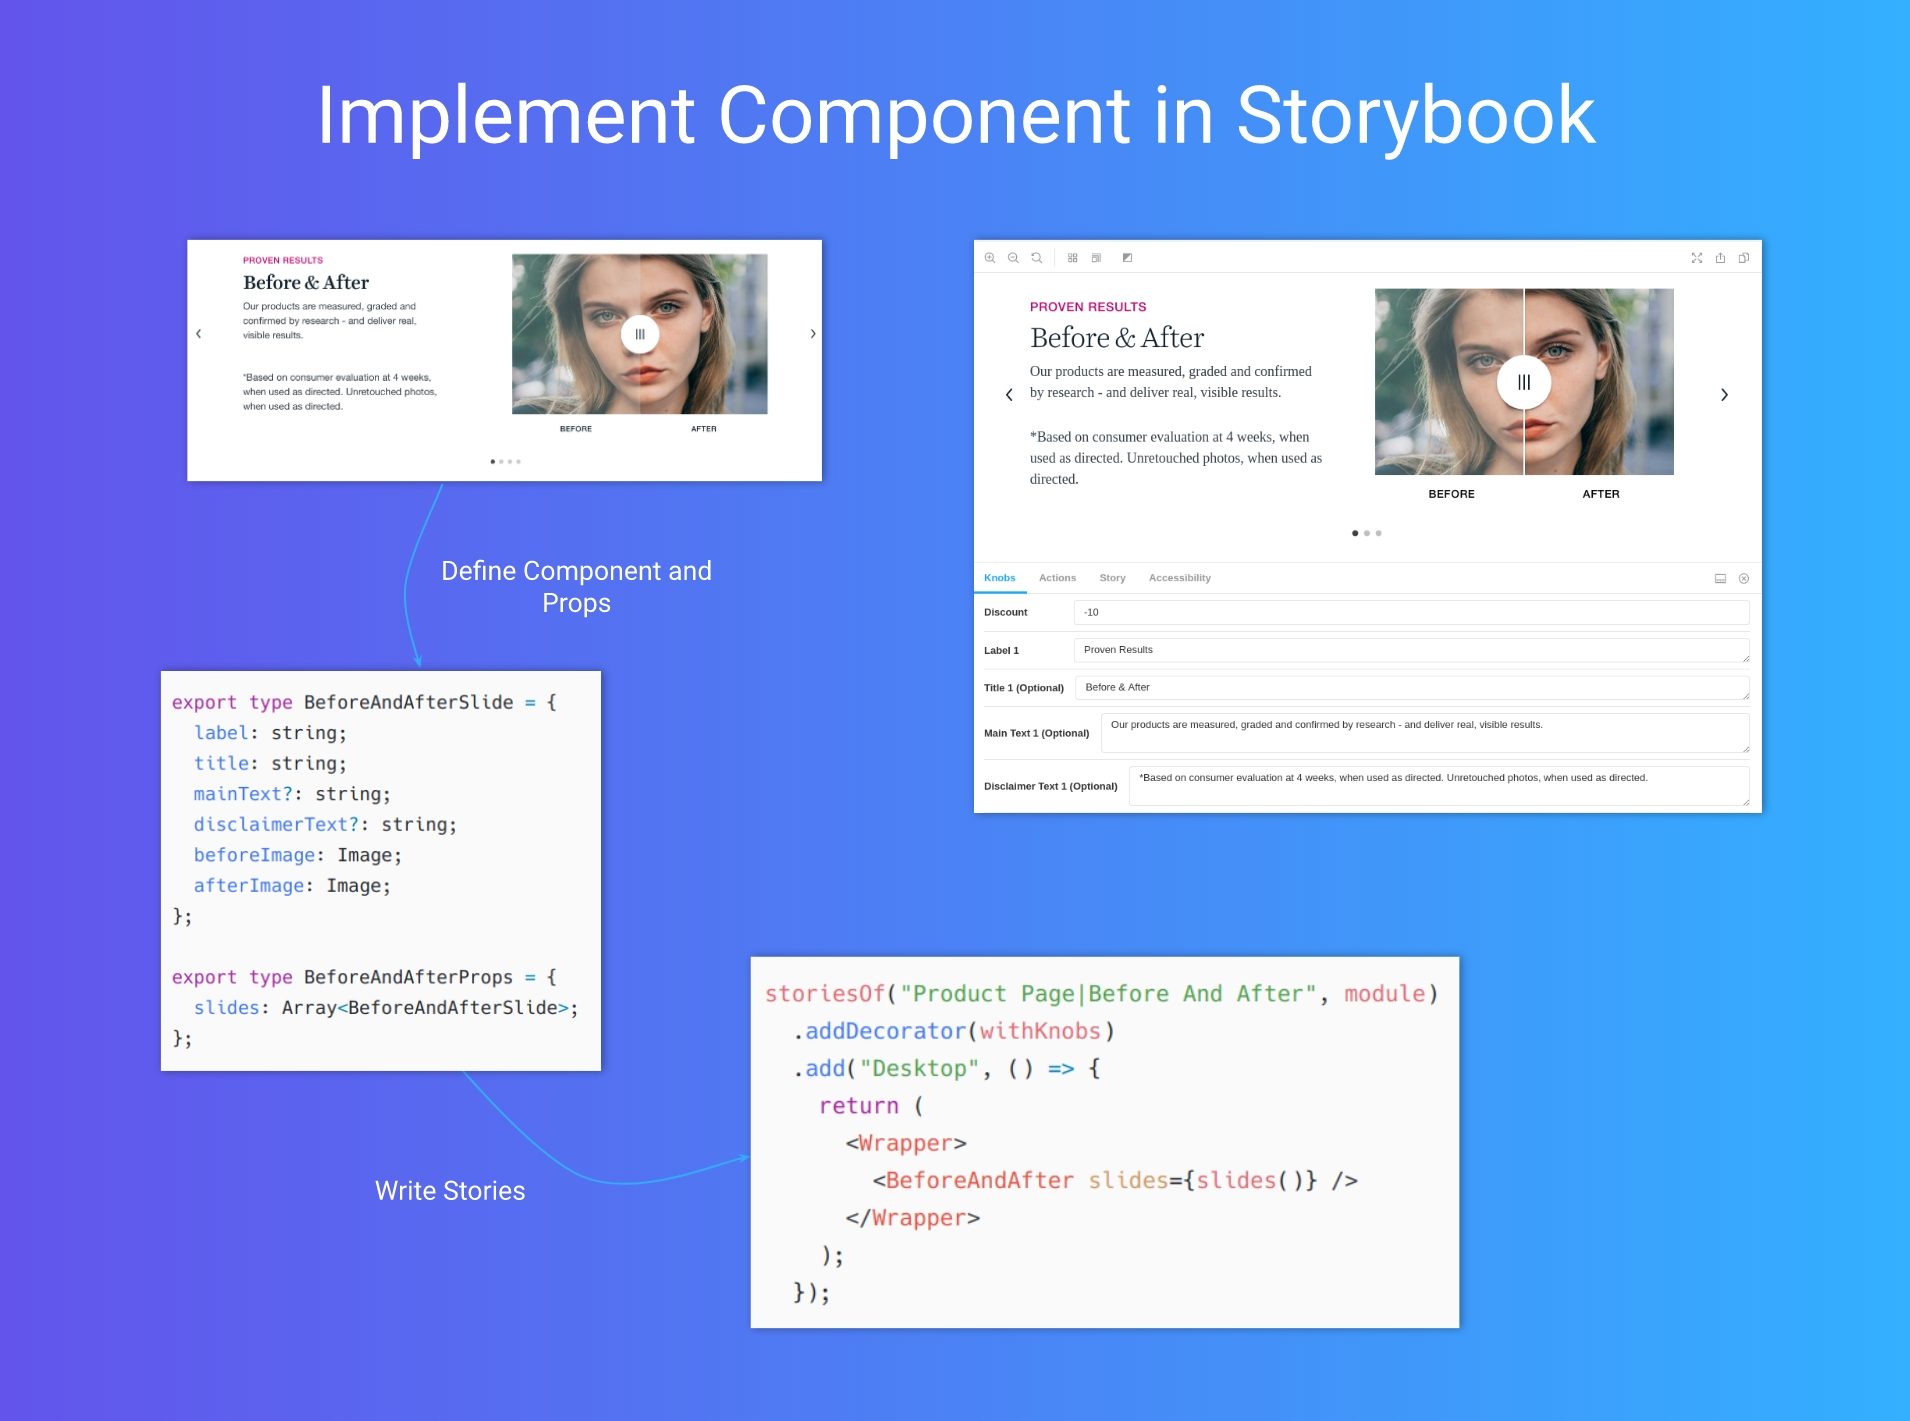 Implement components in storybook